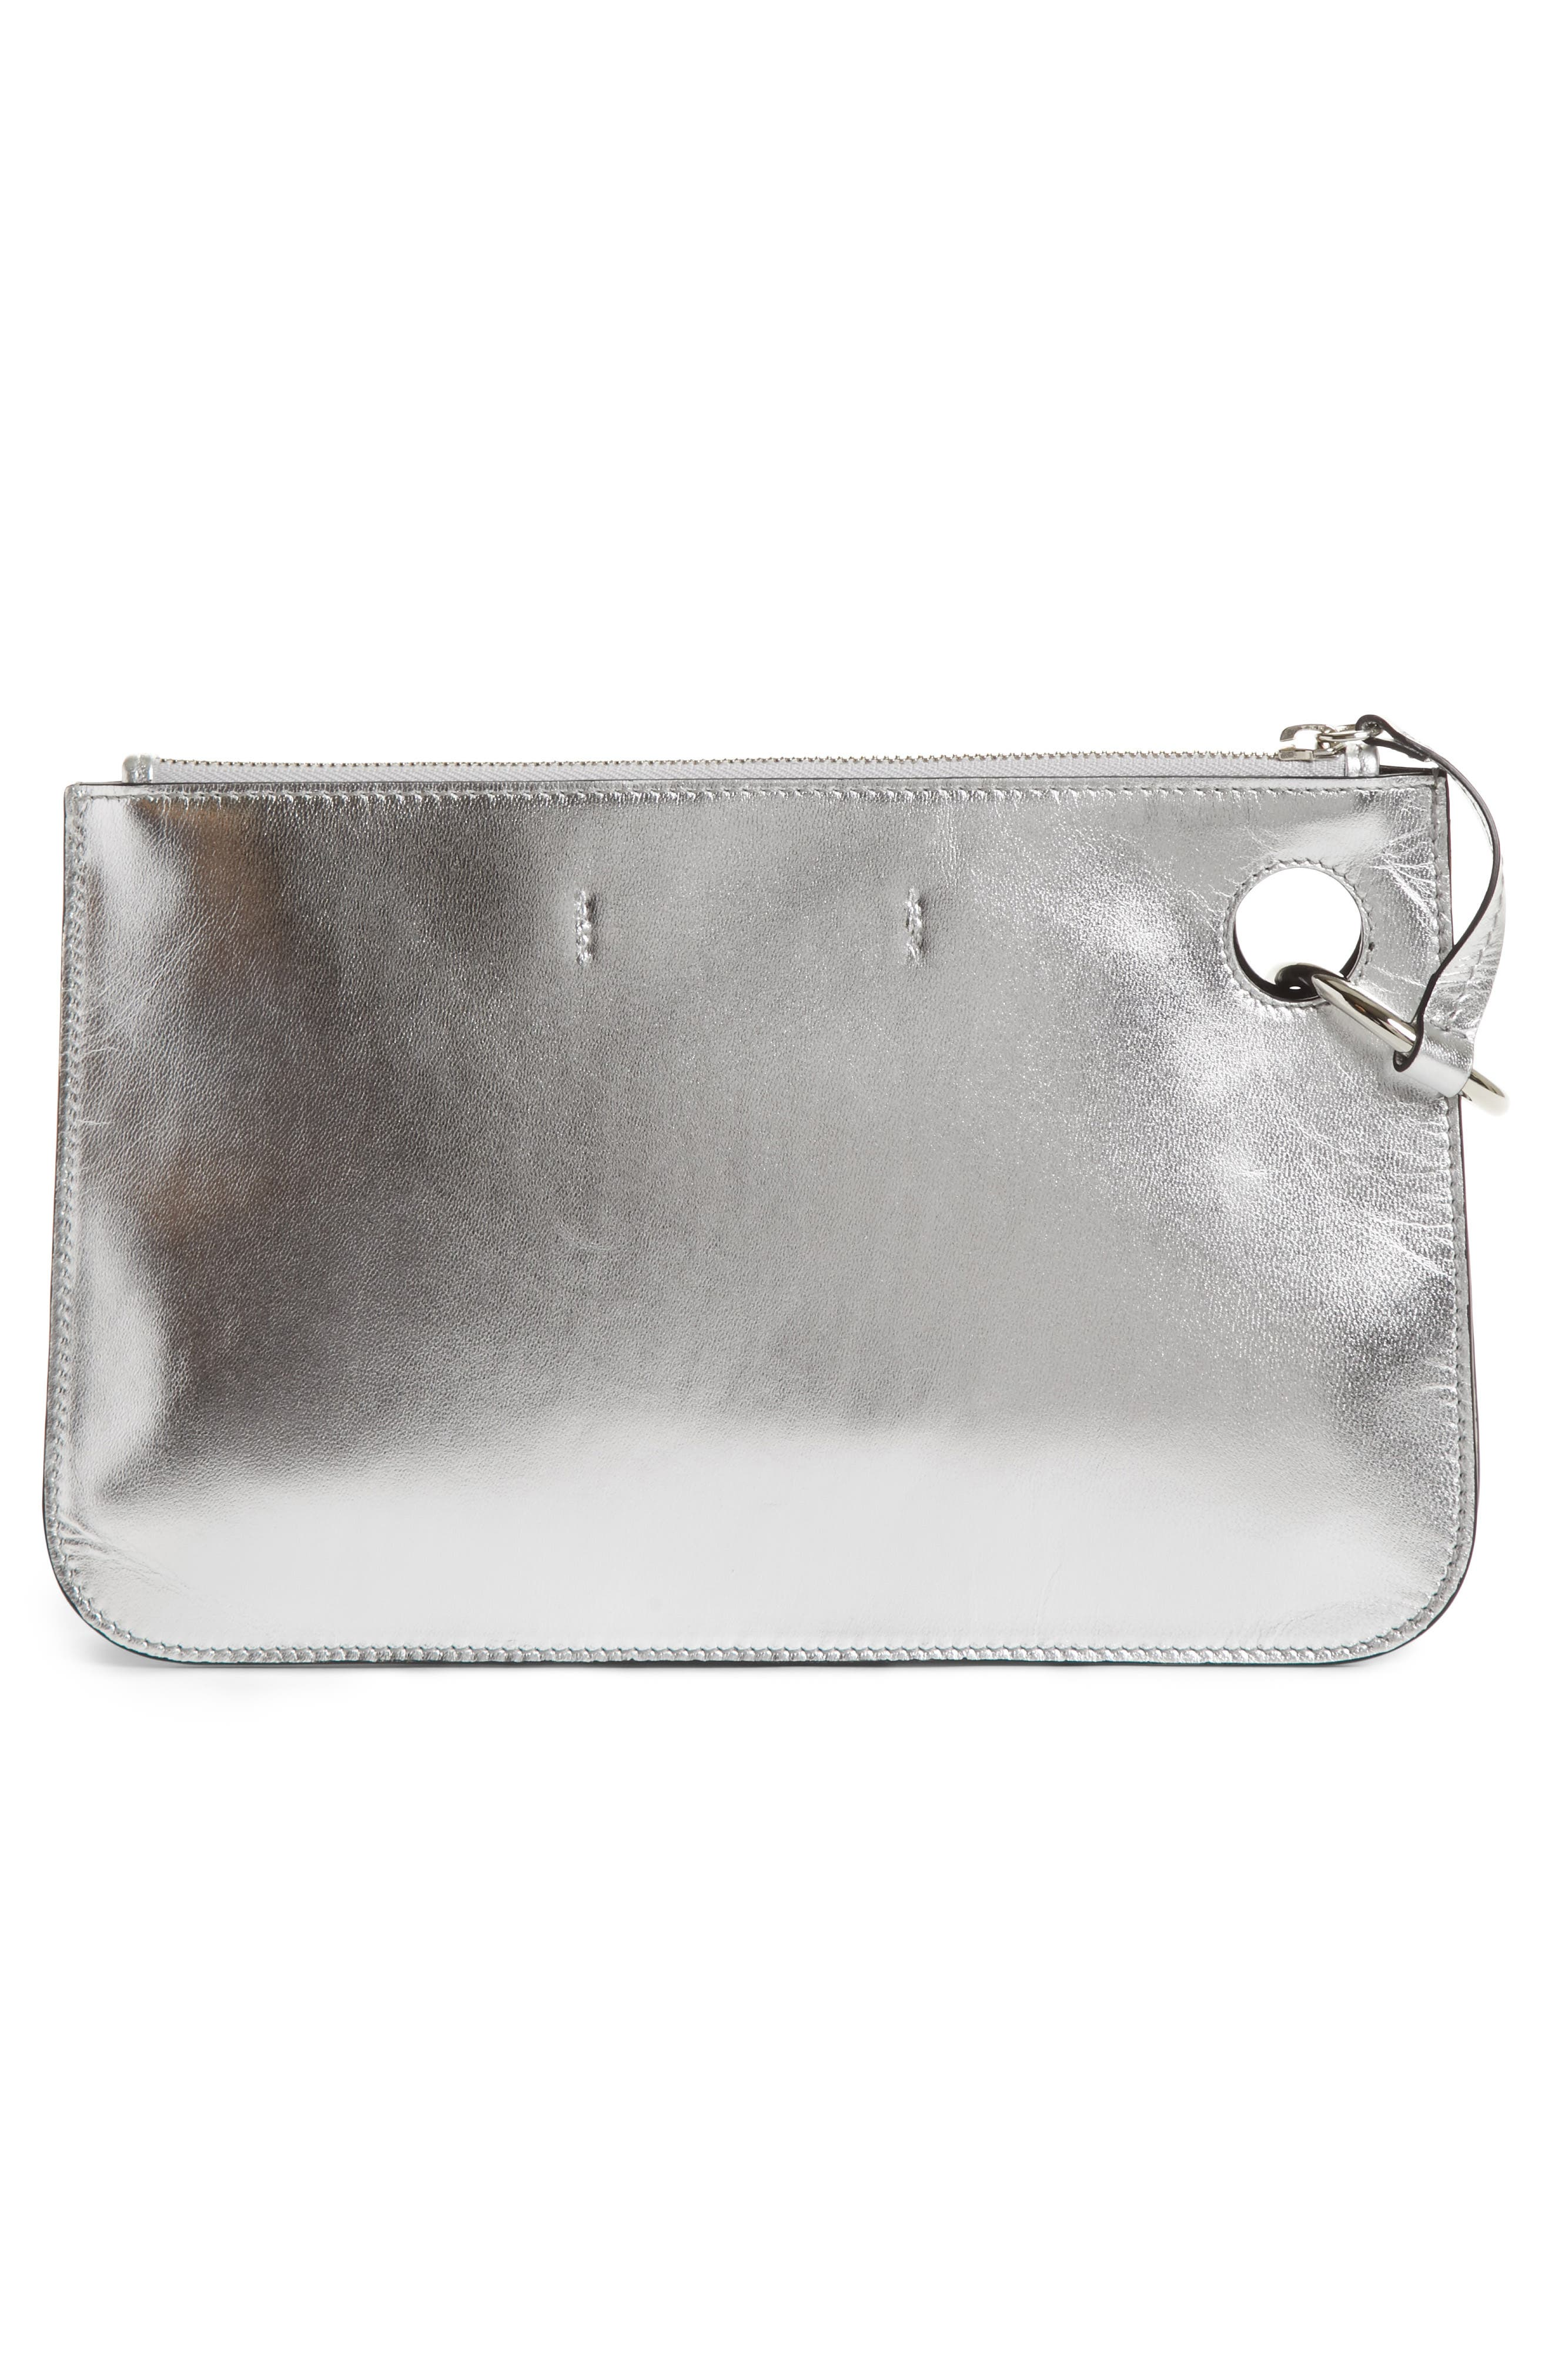 J.W.ANDERSON Pierce Metallic Leather Clutch,                             Alternate thumbnail 3, color,                             040